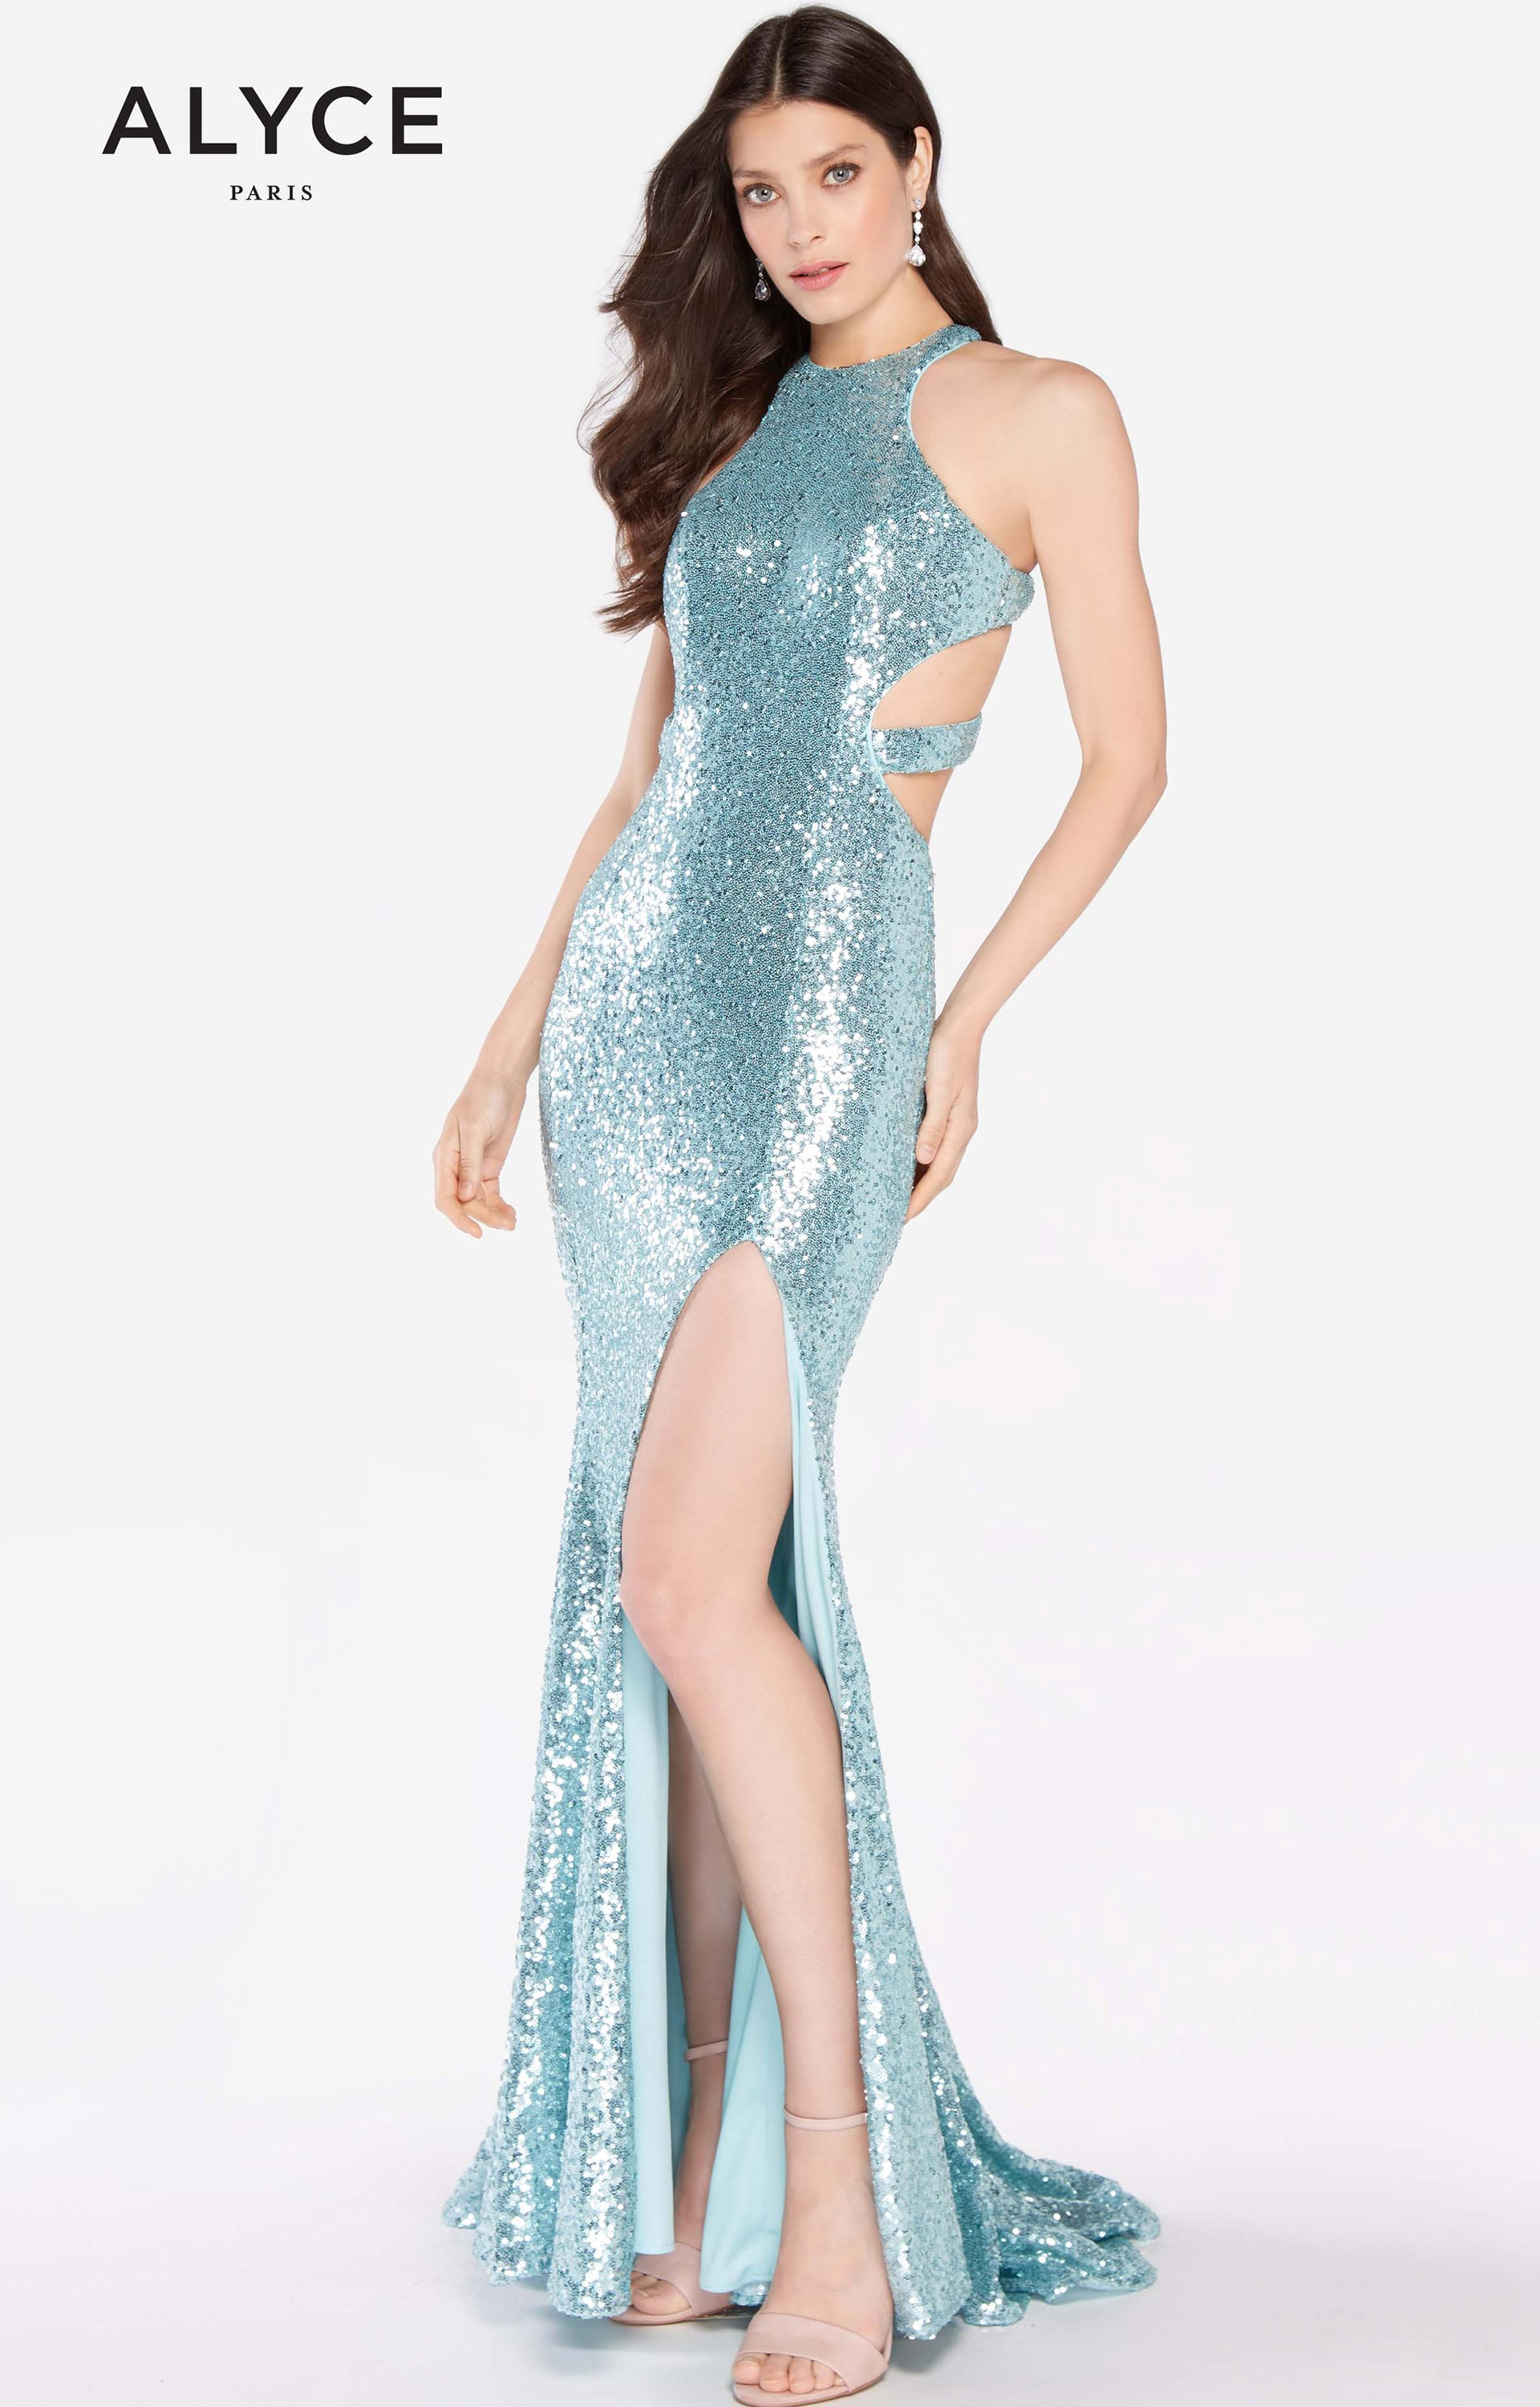 Alyce Paris 60037 - Long Fitted Sequins Prom Dress